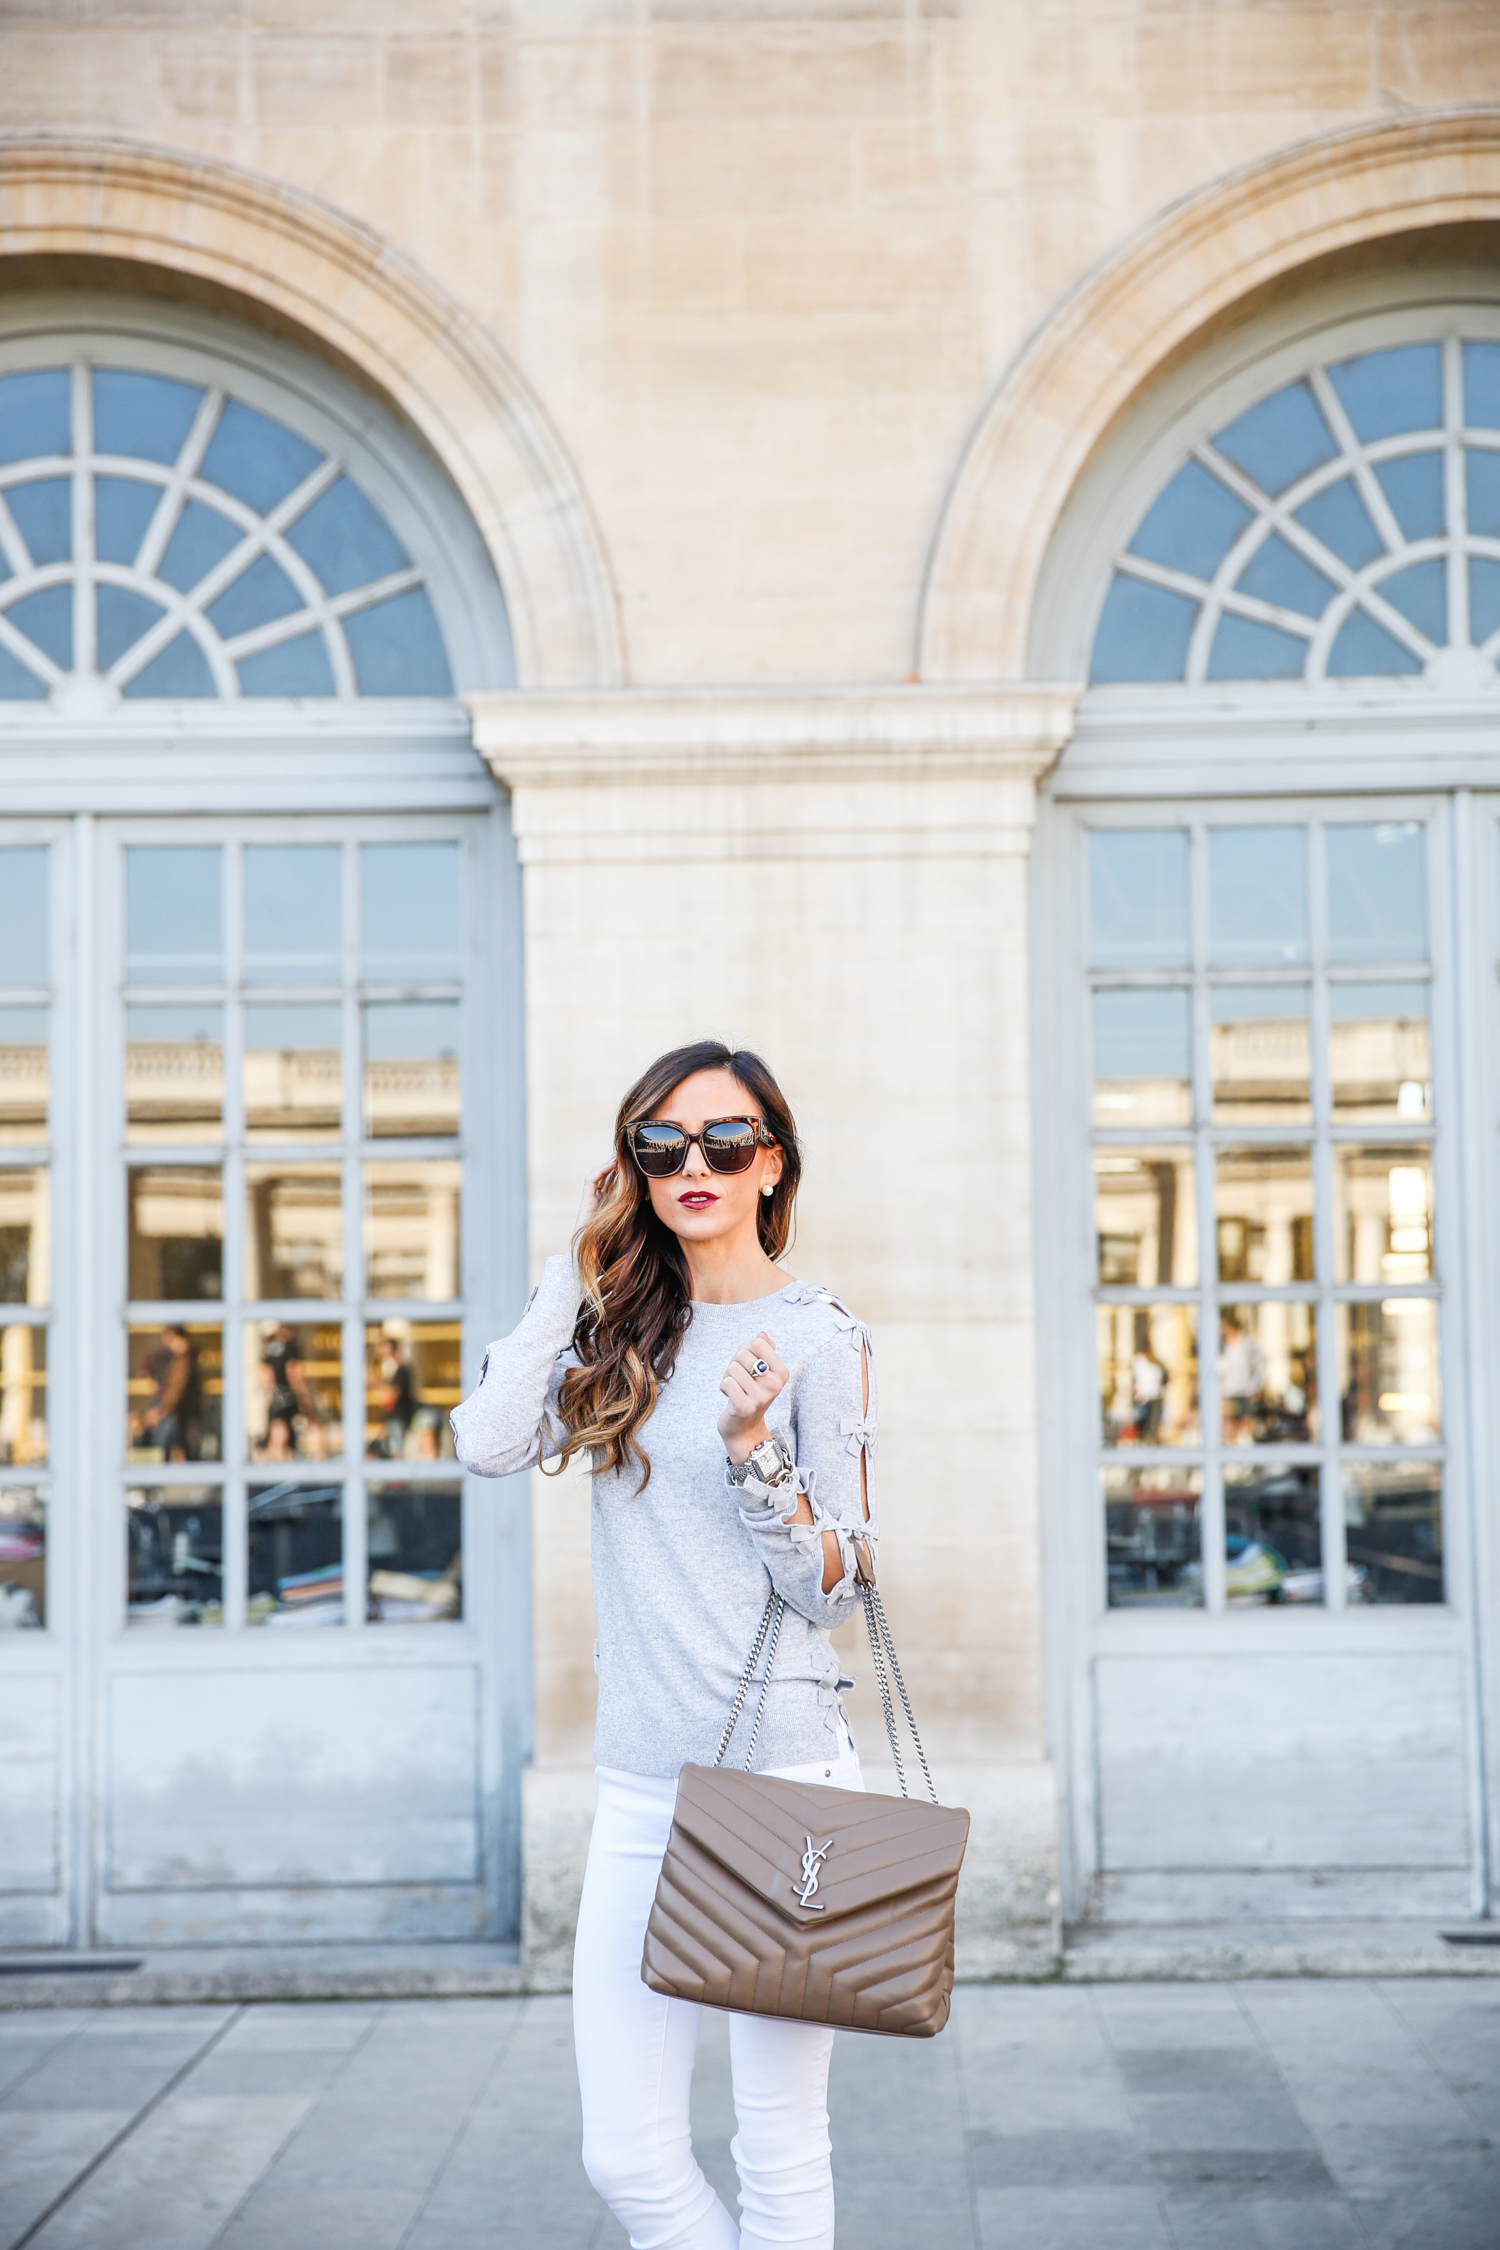 paris, france, sequins and things, alyson haley, palais royale, ted baker, ag jeans, steve madden heels, ysl handbag, black and white stripes, fall in paris, travel outfit,